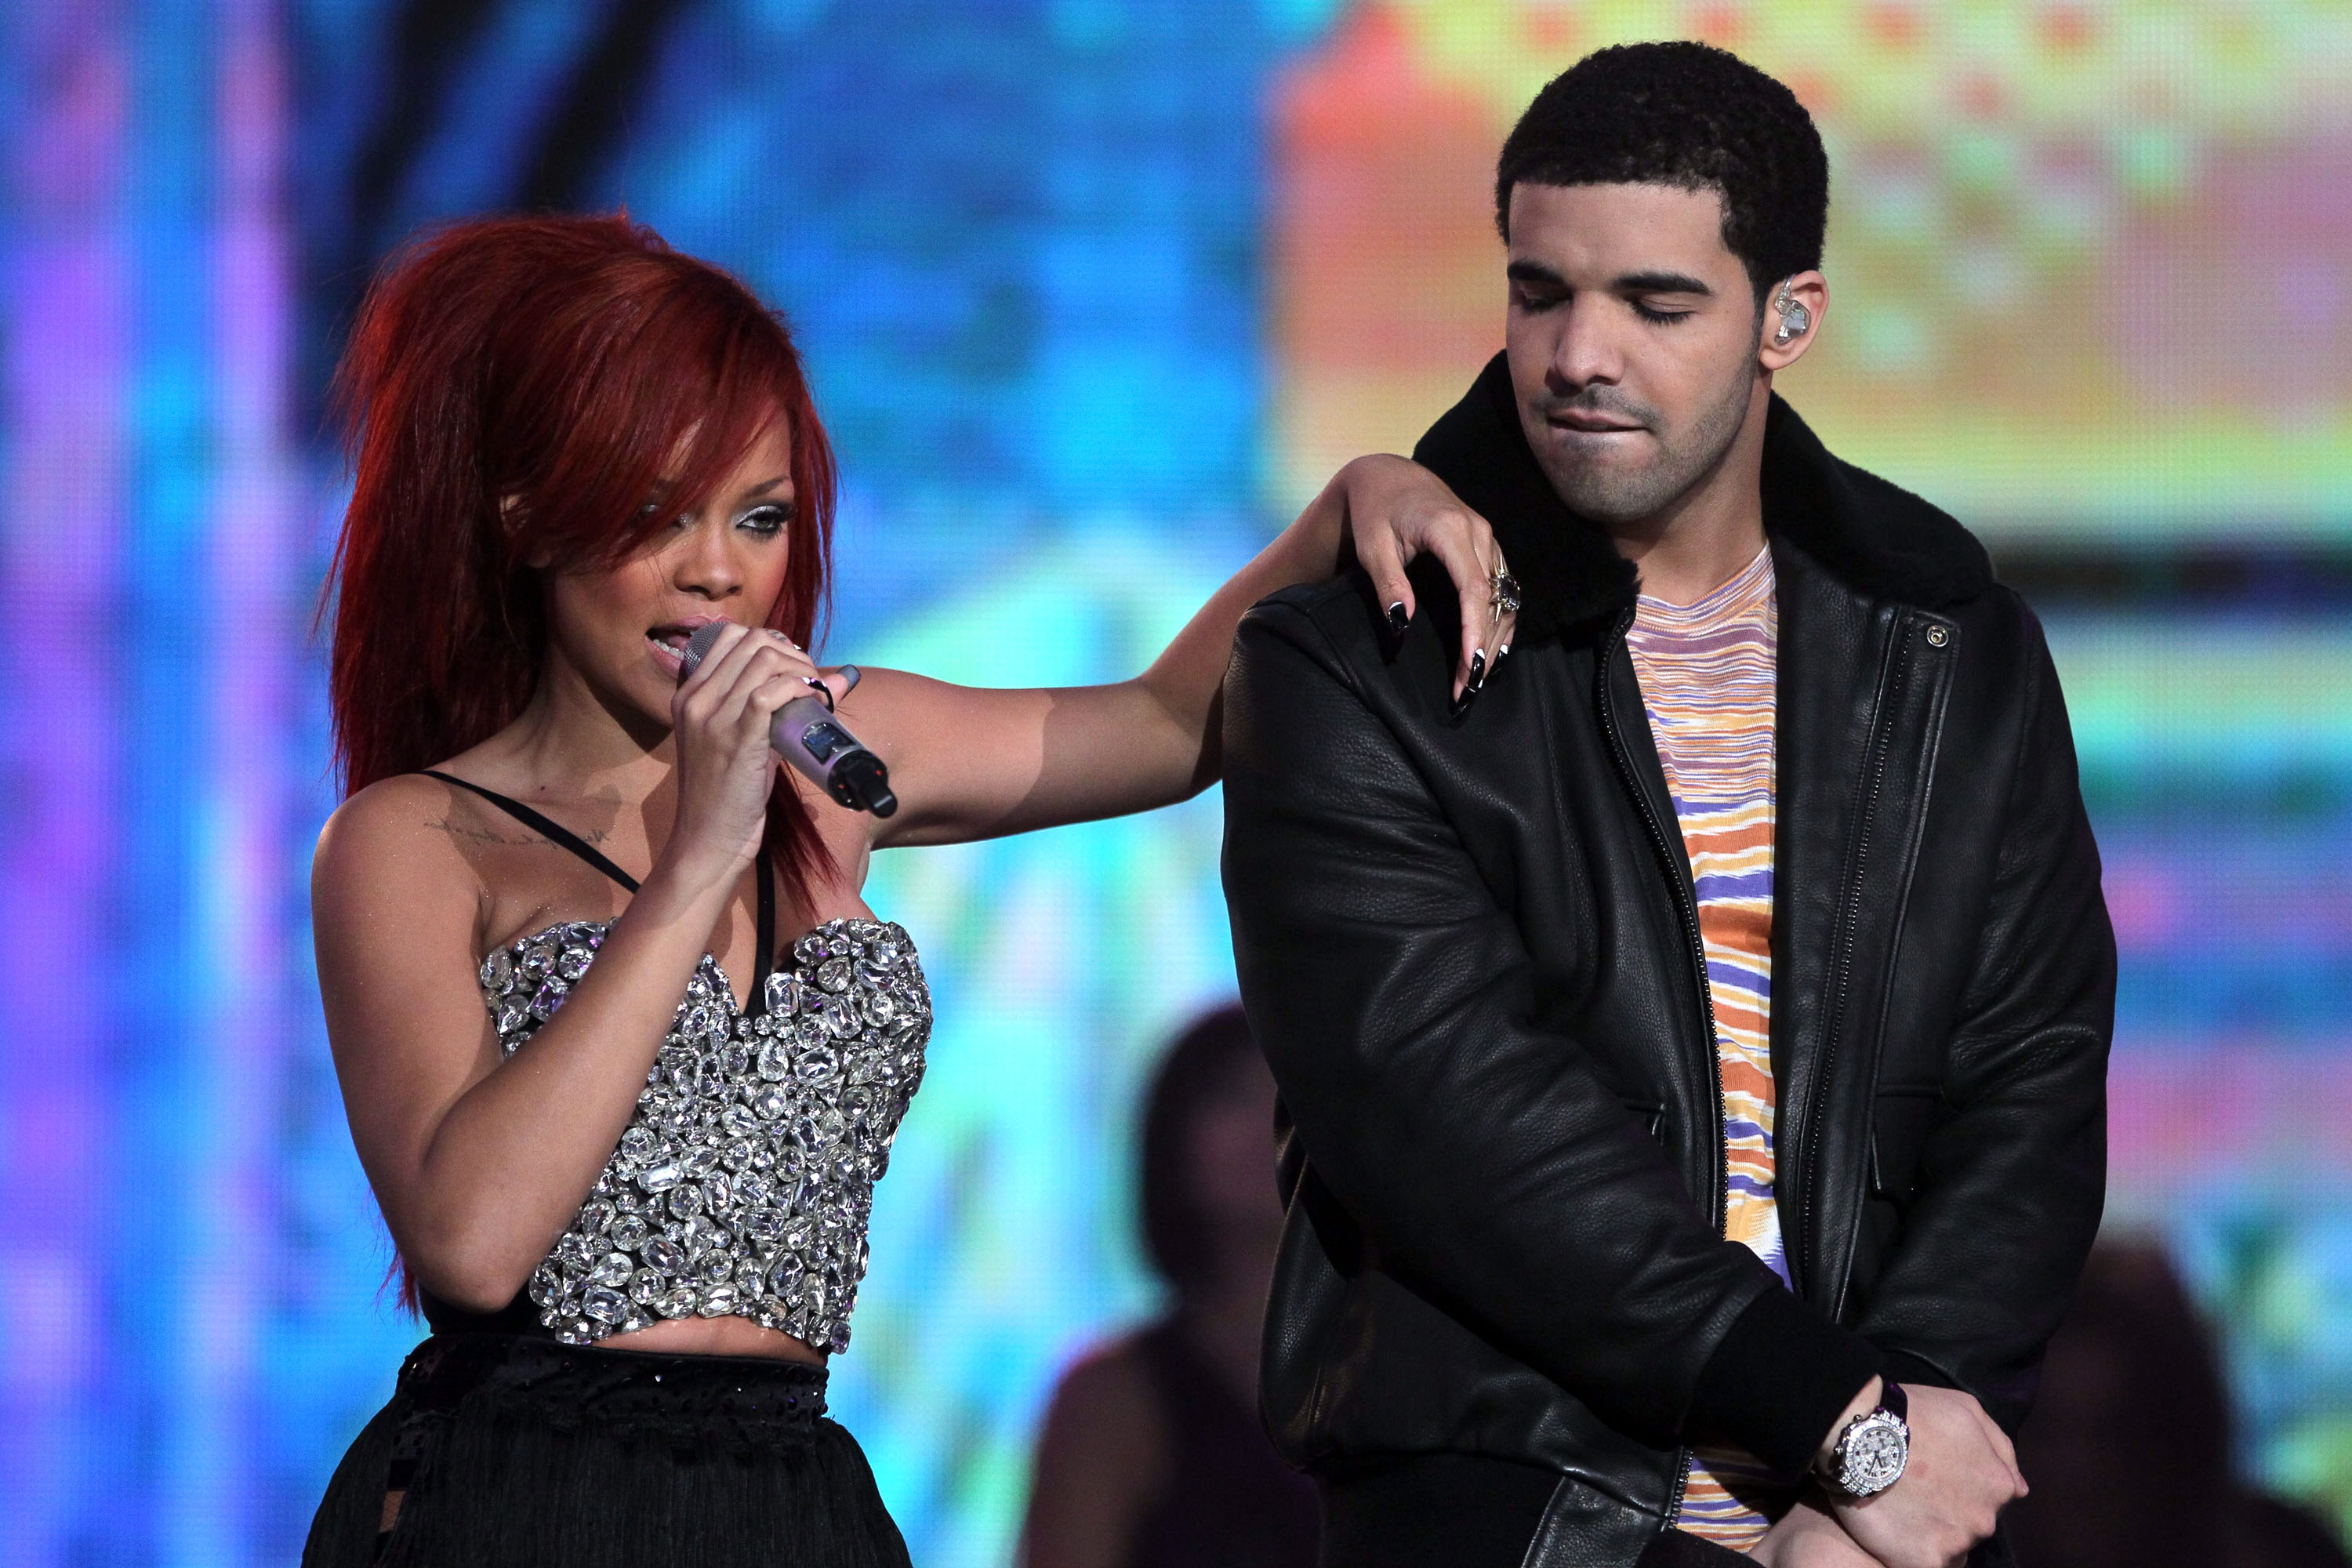 Is Drake And Rihanna Dating Right Now